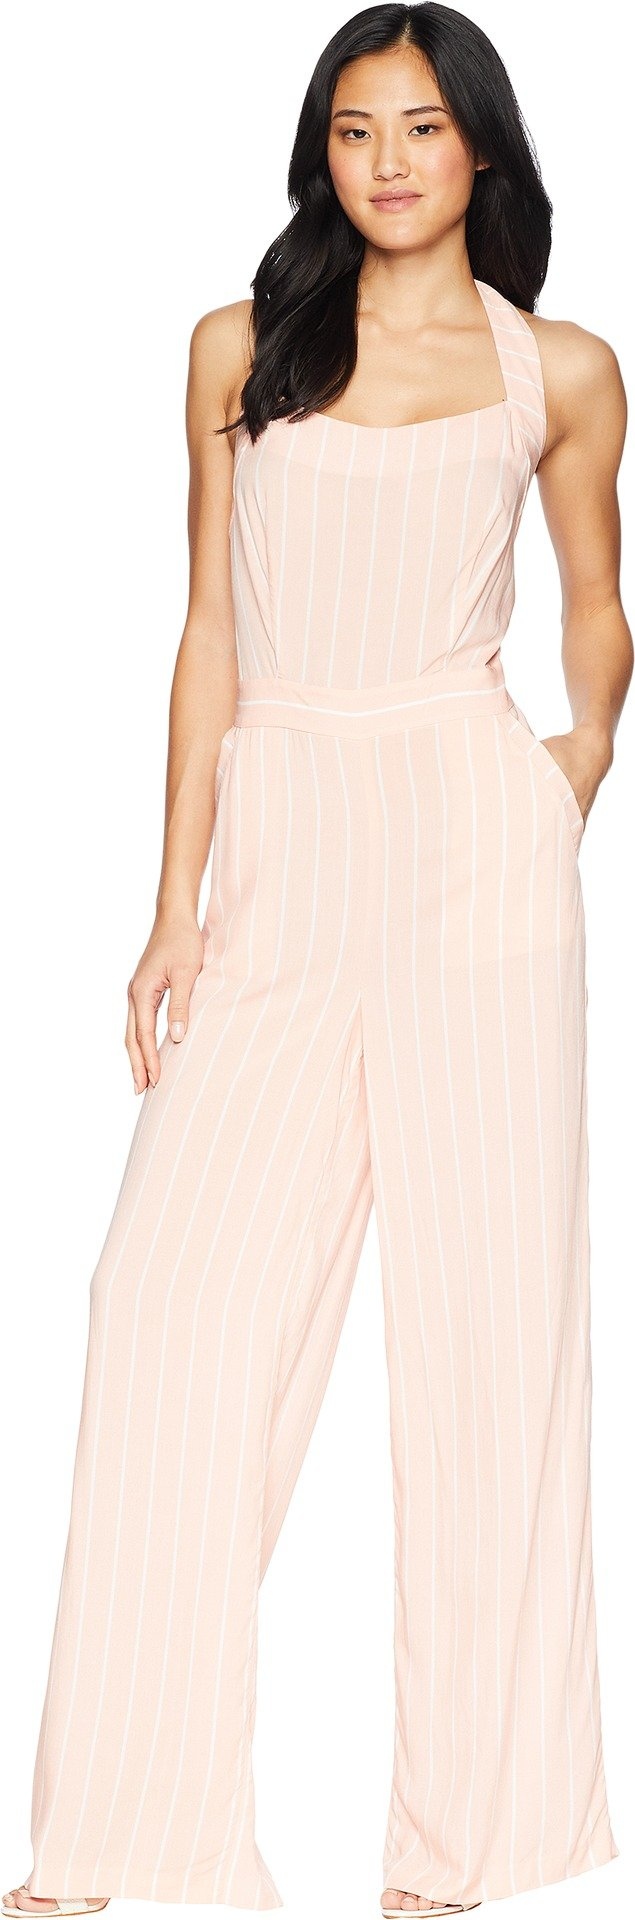 Juicy Couture Women's Cindy Stripe Jumpsuit Soft Pink Cindy Stripe 6 by Juicy Couture (Image #1)